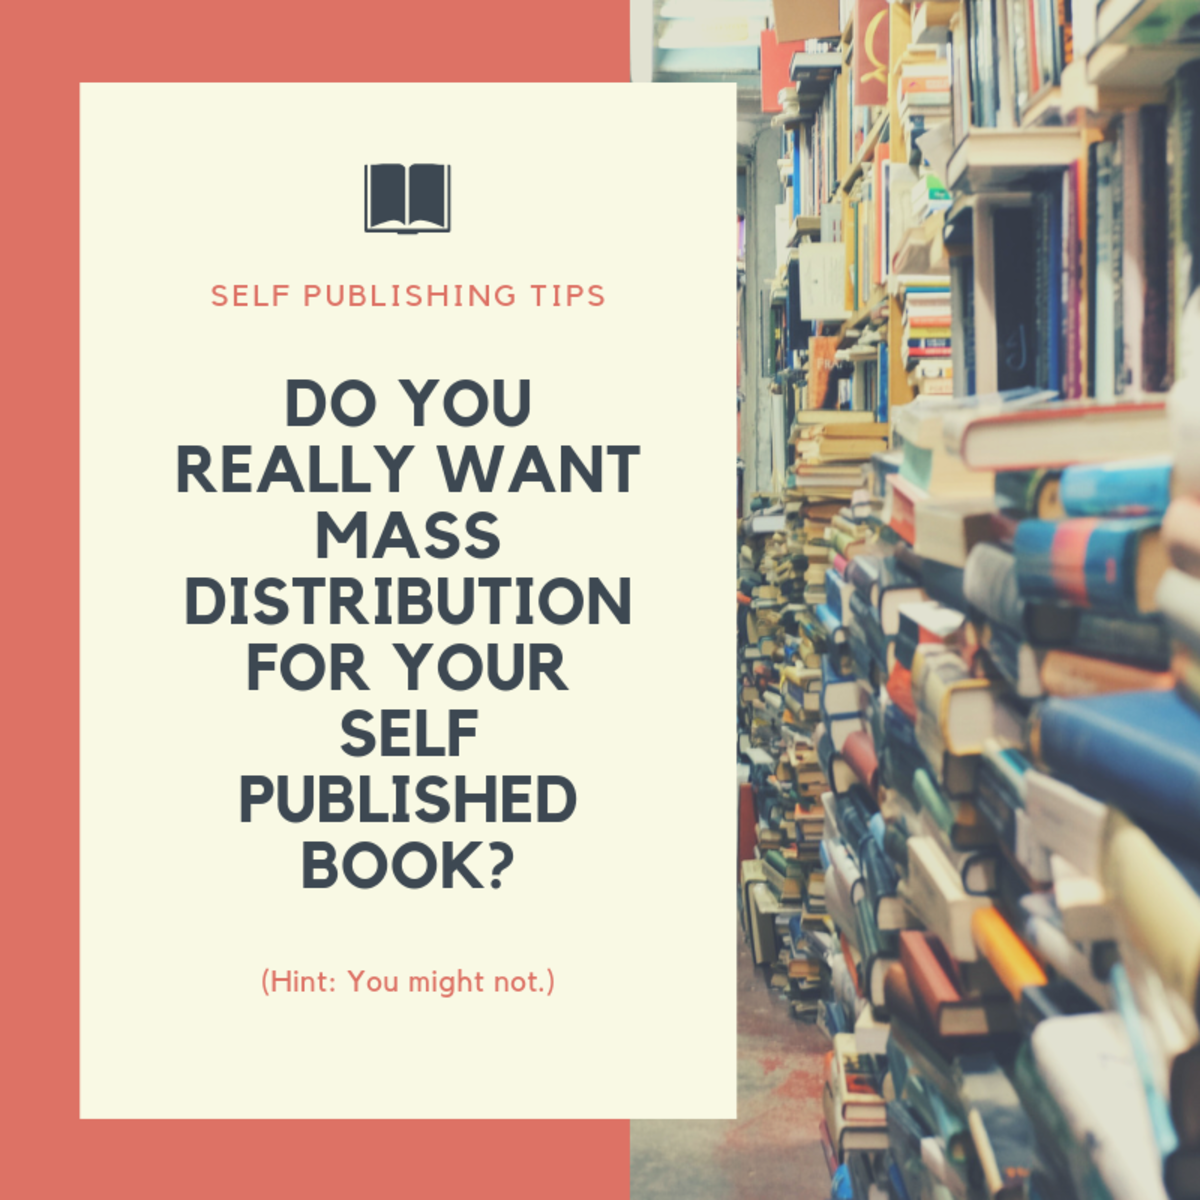 Do you want mass distribution for your self-published book?